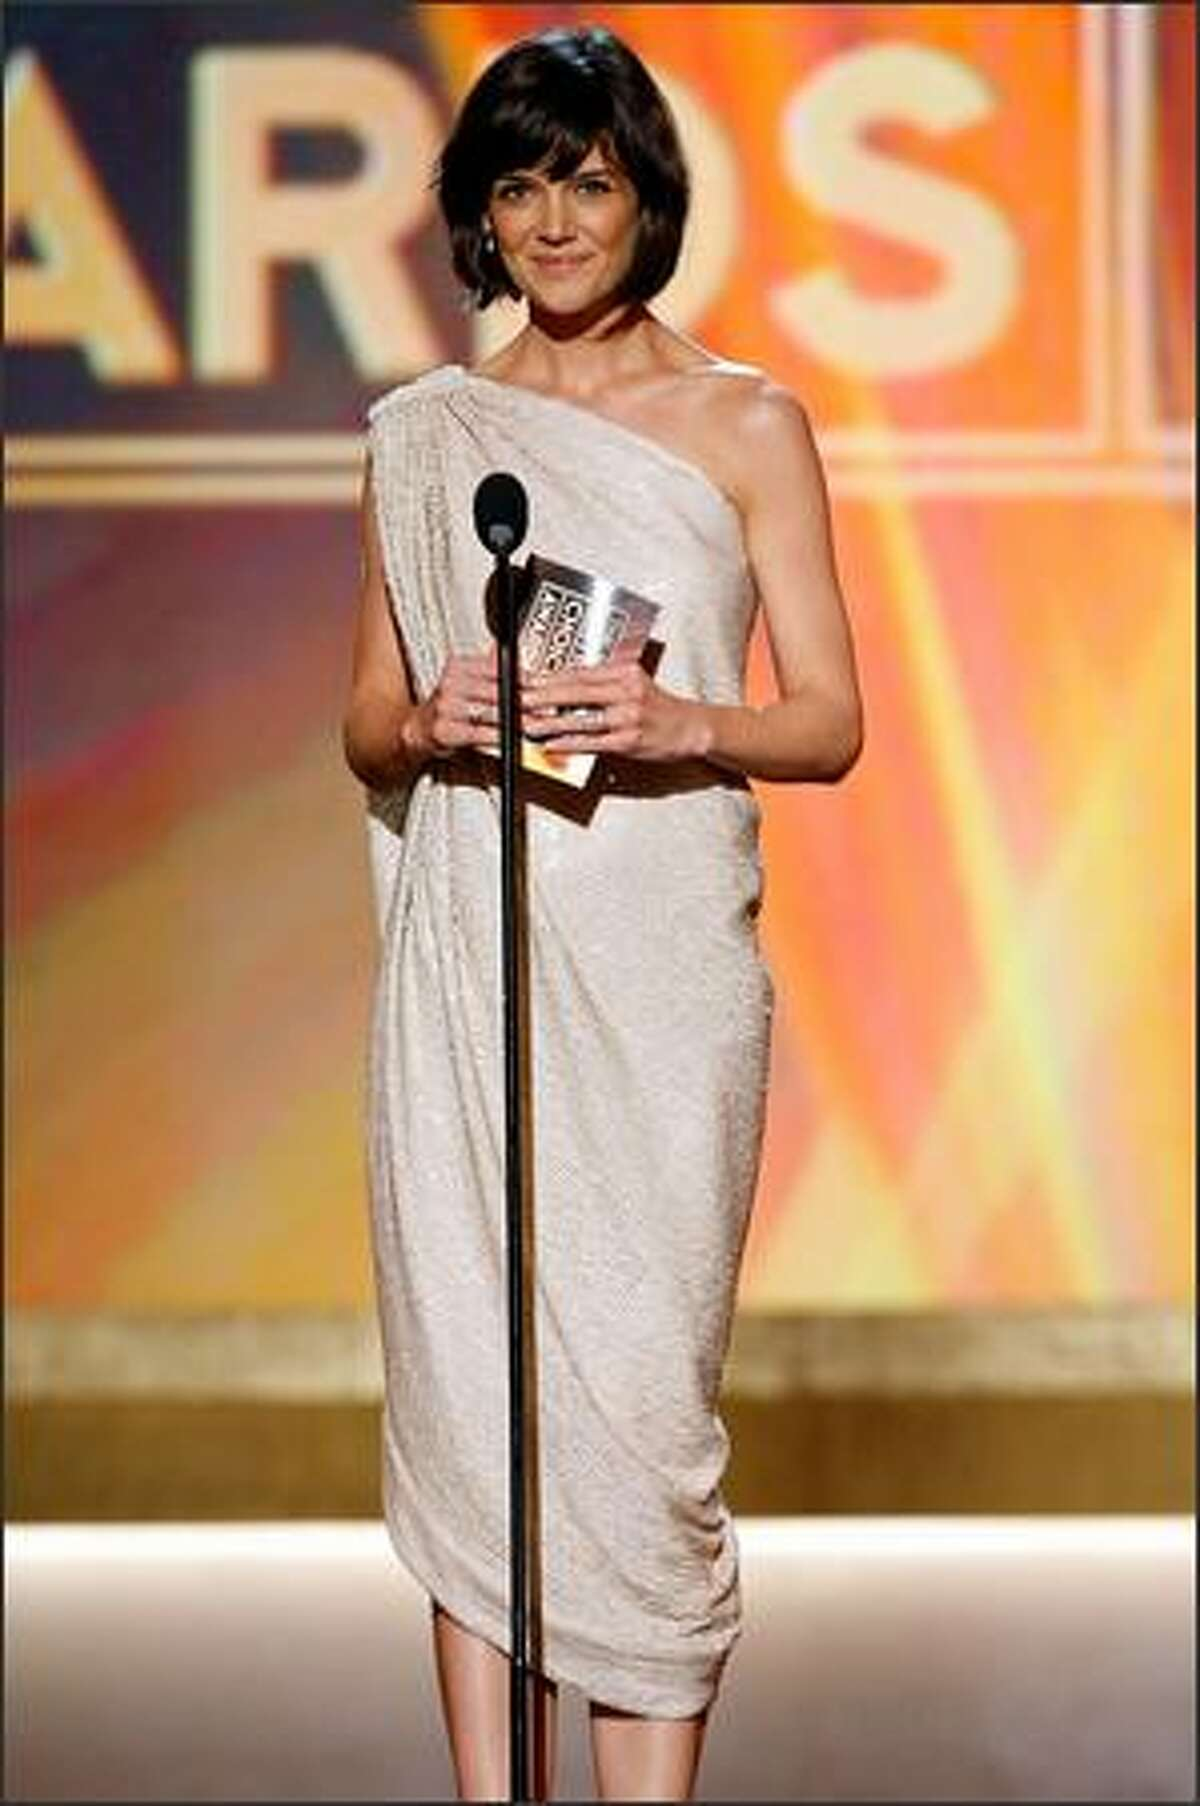 Actress Katie Holmes presents the award for 'Best Comedy Movie' onstage during the 13th annual Critics' Choice Awards held at the Santa Monica Civic Auditorium on Monday in Santa Monica, Calif.